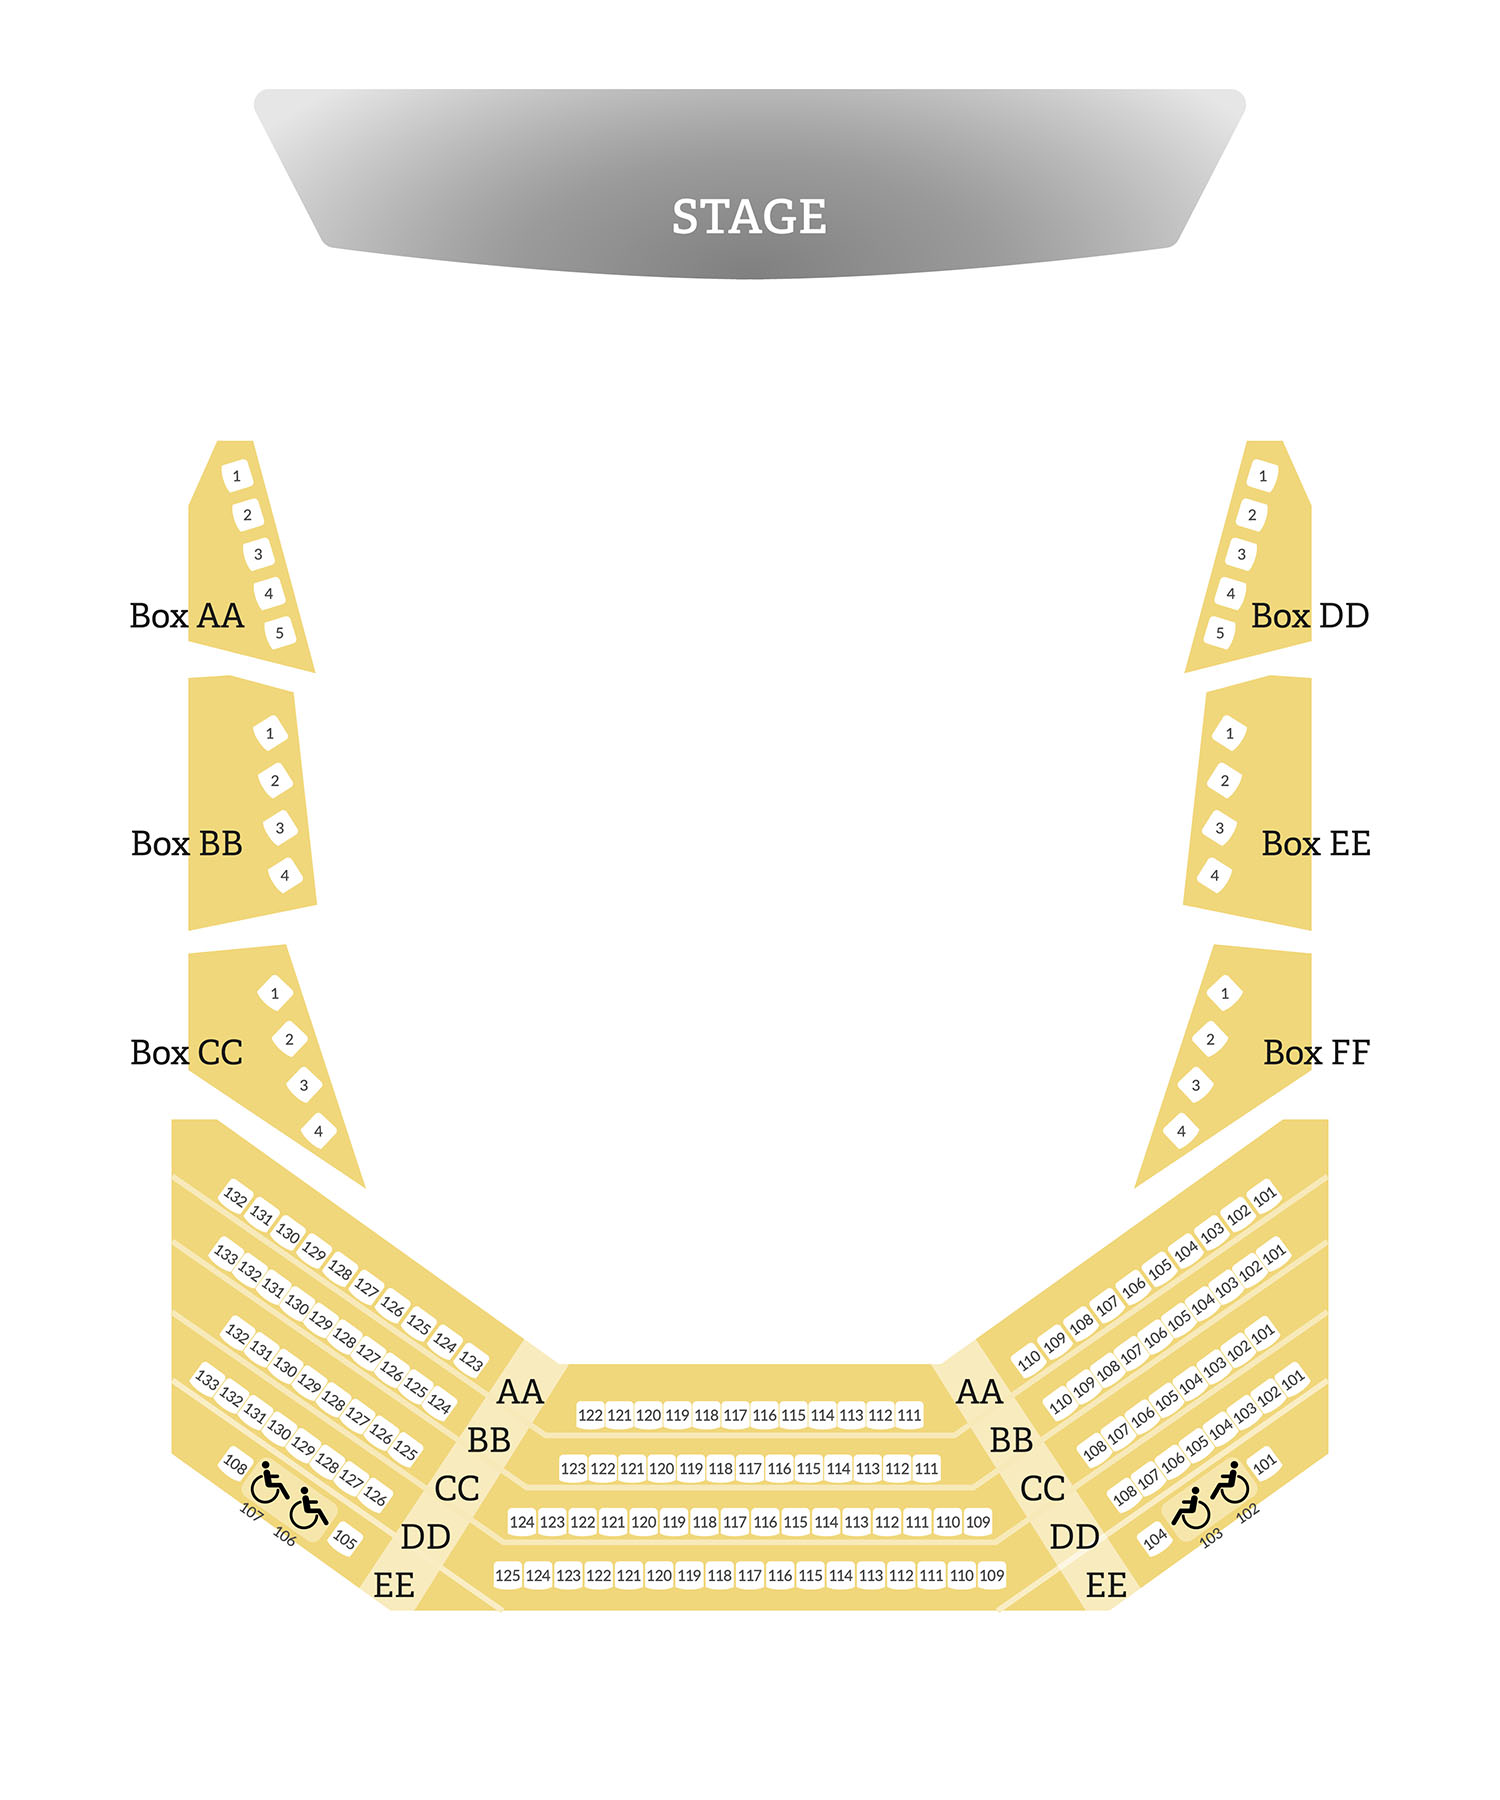 seatmap - Mainstage Theater Balcony